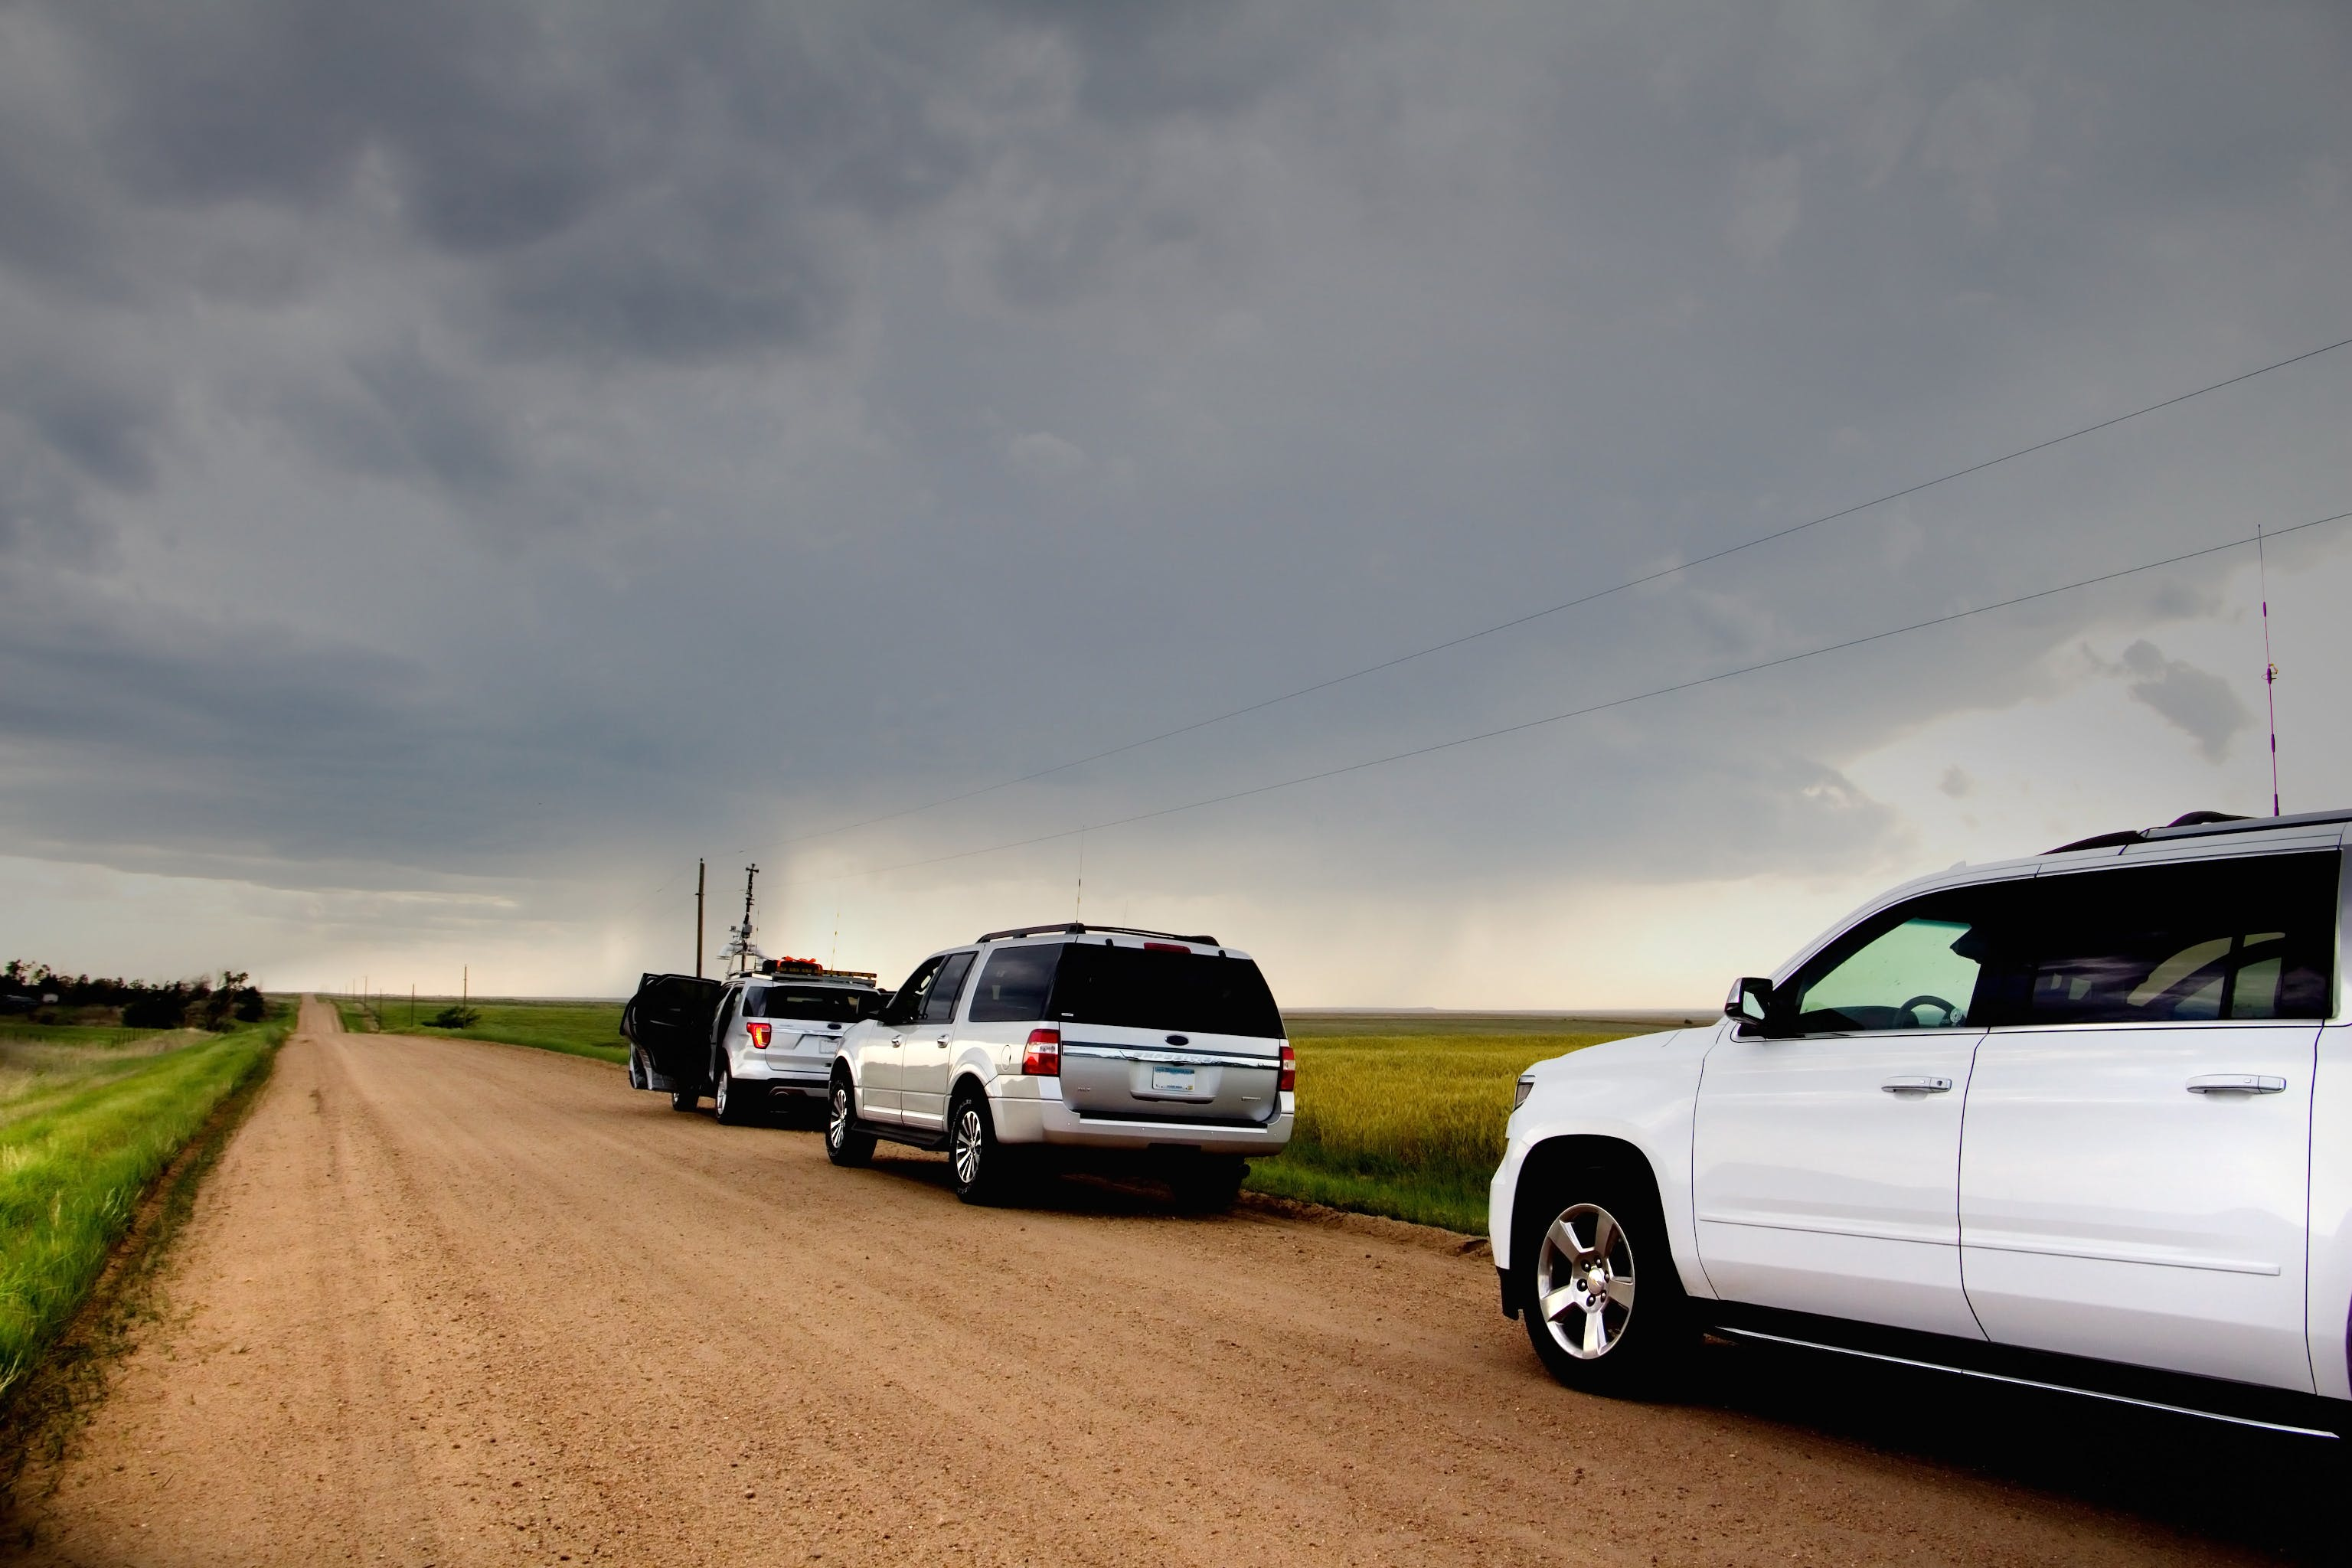 Free stock photo of clouds, dirt road, driving, meteorologist